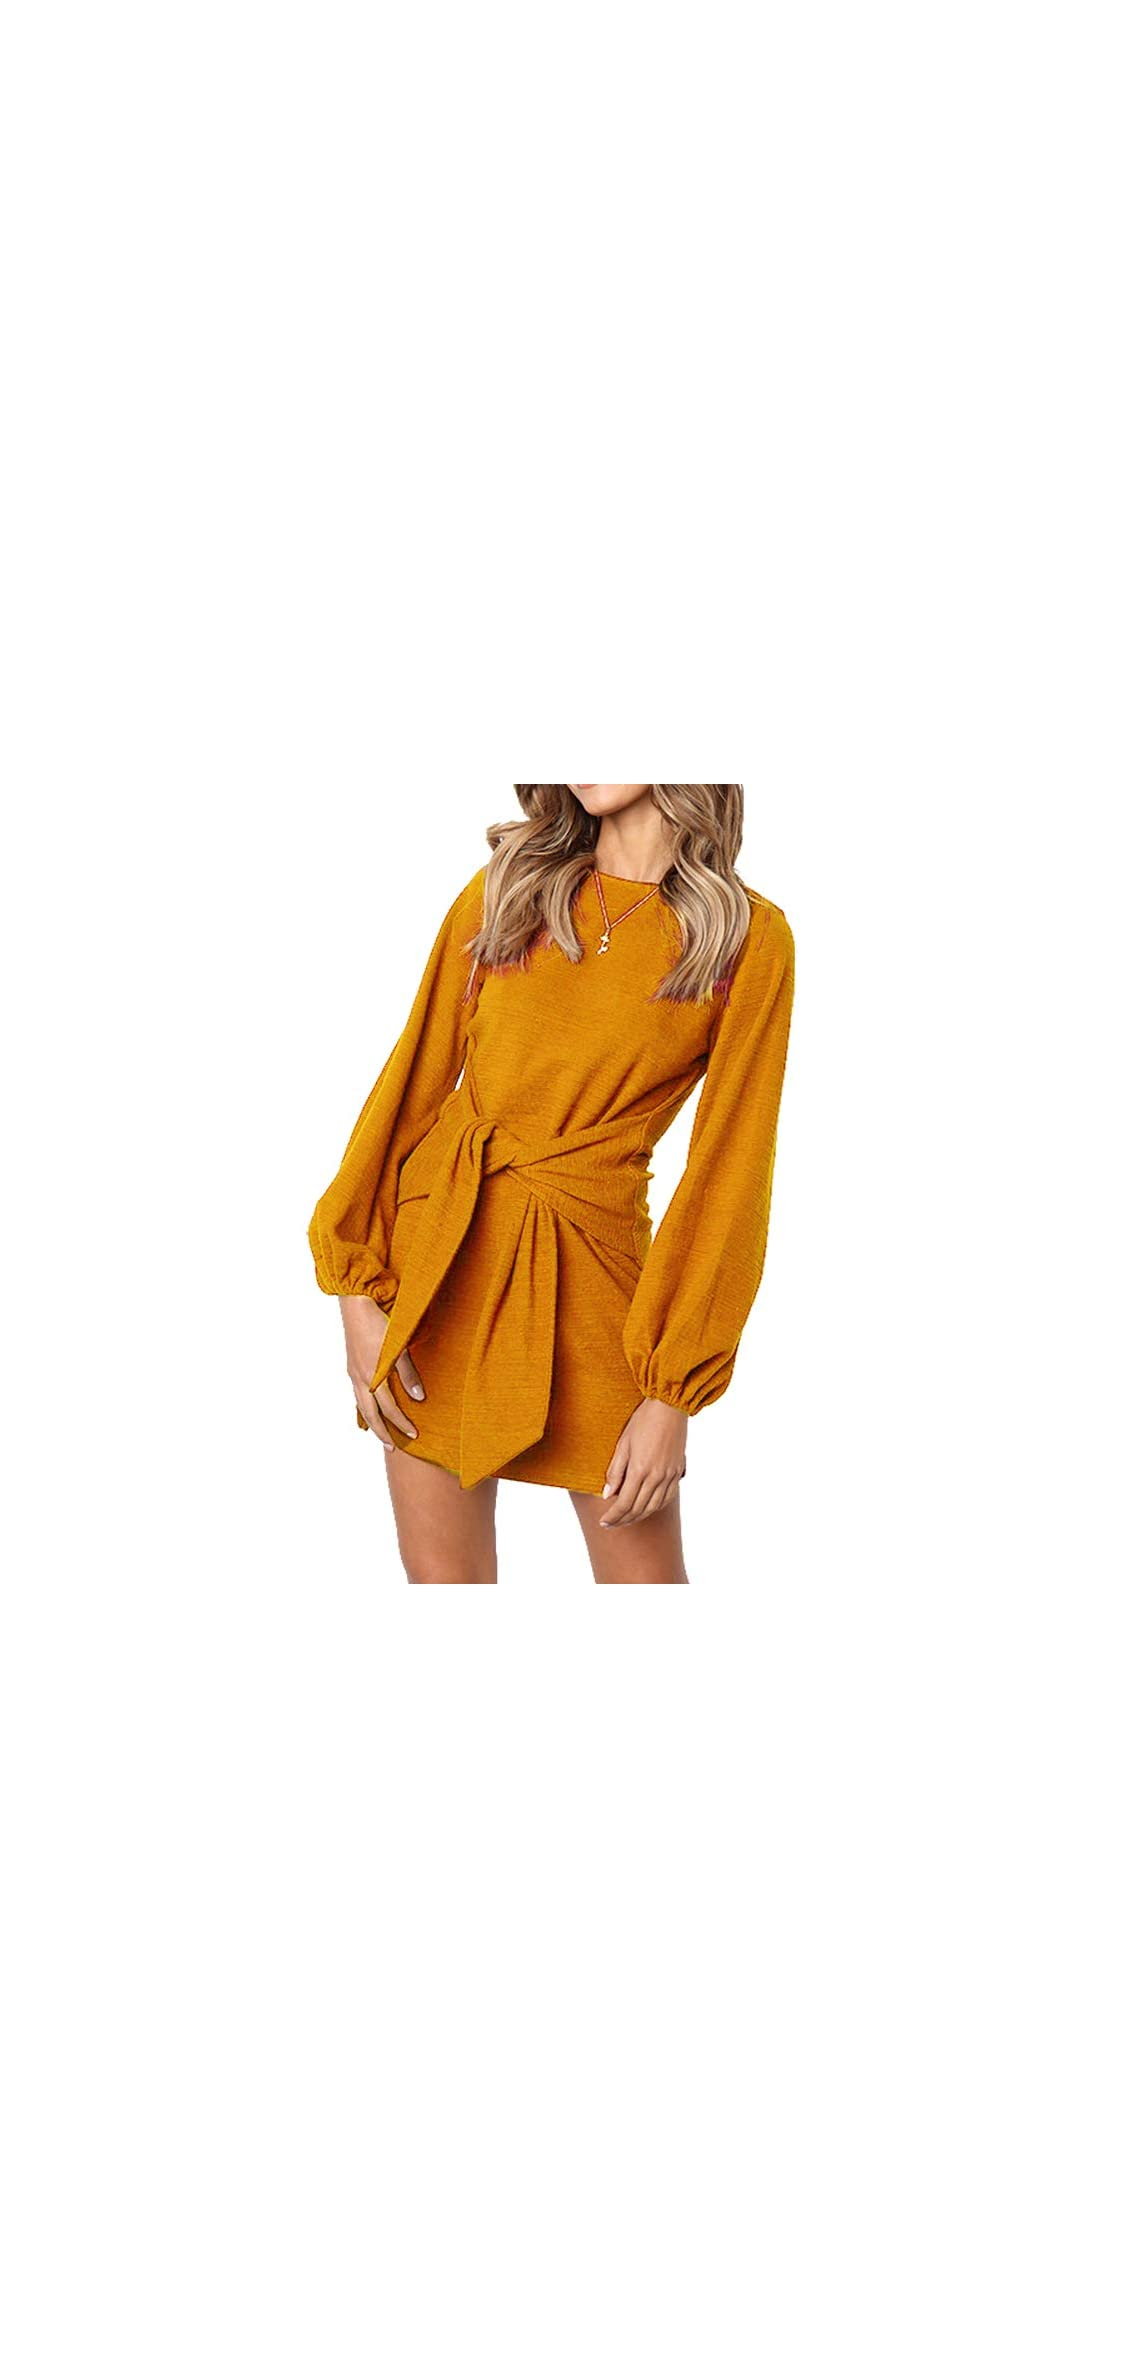 Women's Loose Casual Front Tie Long Sleeve Bandage Party